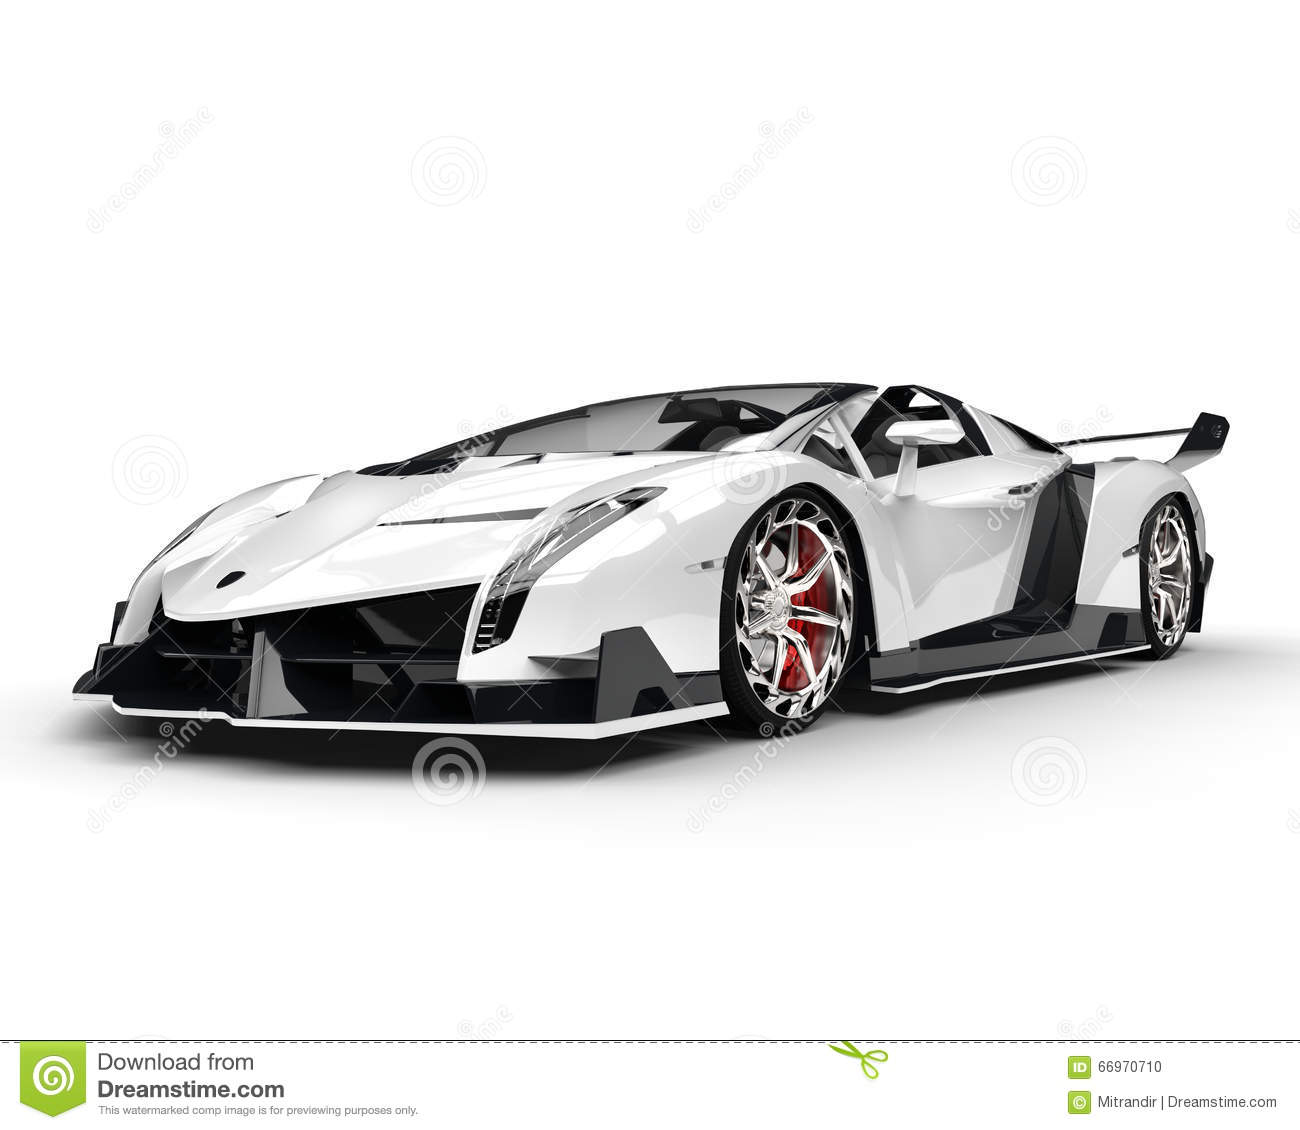 Voiture de course blanche tir de studio illustration stock illustration du v hicule - Image voiture de course ...